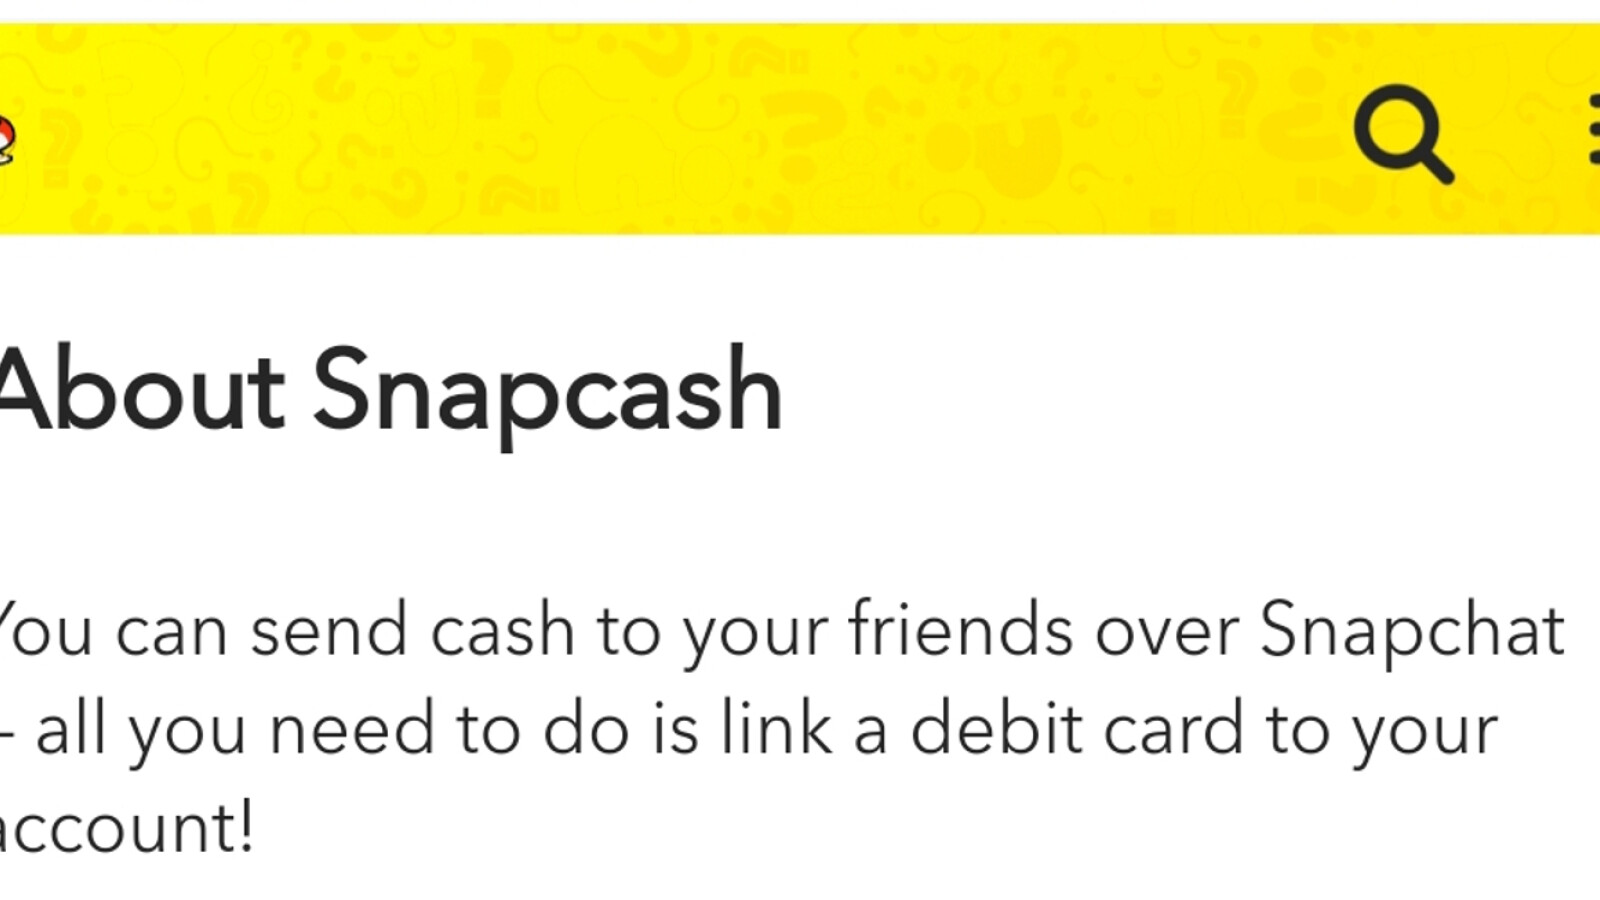 Dc5m United States It In English Created At 2018 07 23 0603 Fuelbelt Neon Snap Bands Yellow Back 2014 Snapchat Partnered With Square To Offer A Peer Money Transfer Service Known As Snapcash Initially Was Billed Way For Friends